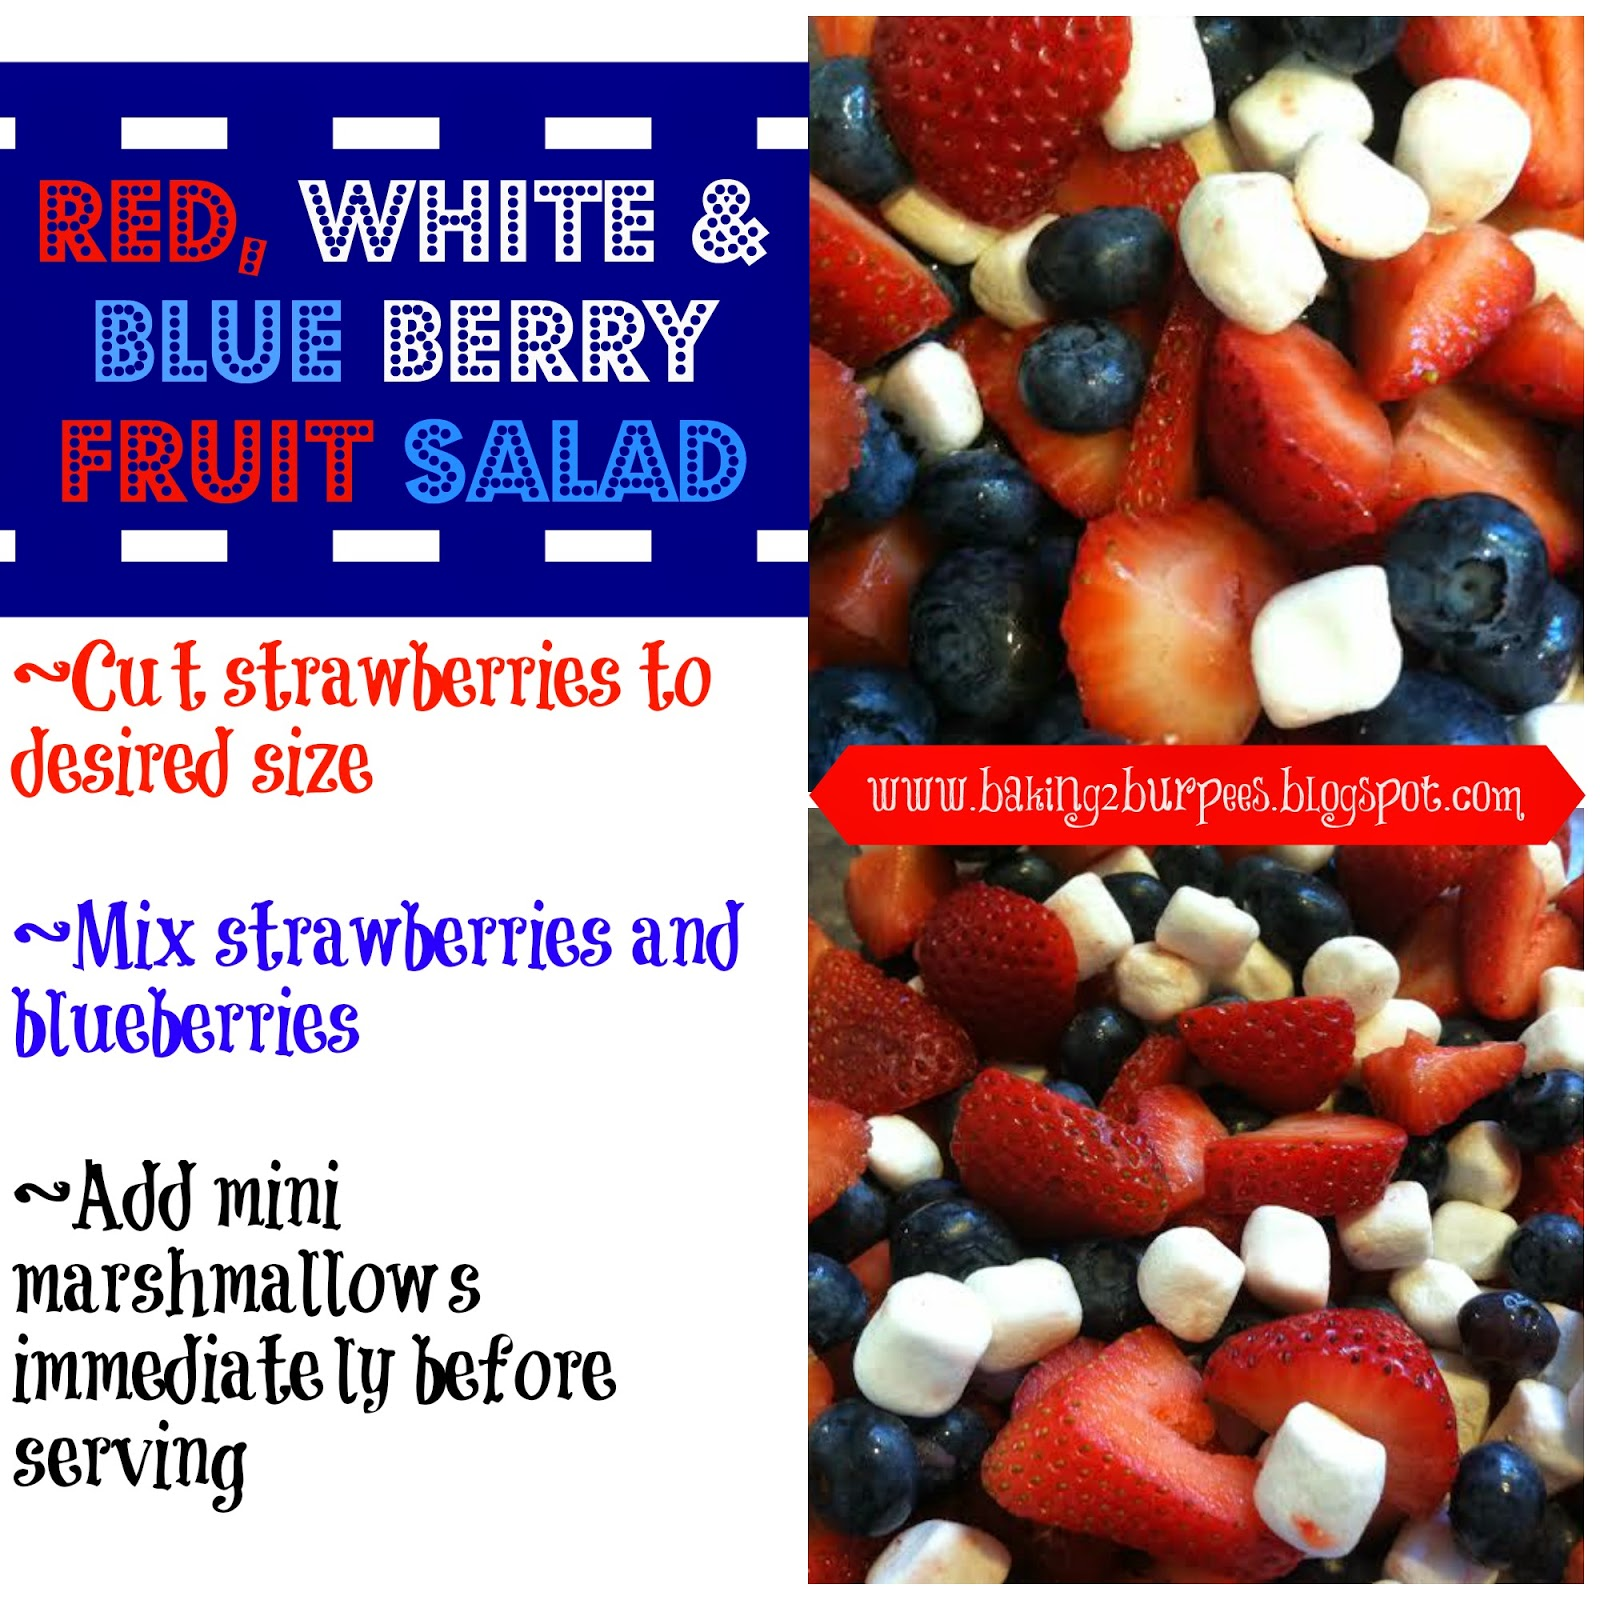 holiday clean eating tips, clean eating, recipe, fit mom, transformation, motivation, weight watchers, diet, shakeology, beachbody, coach, Erin Traill, strawberries, blueberries, berry fruit salad